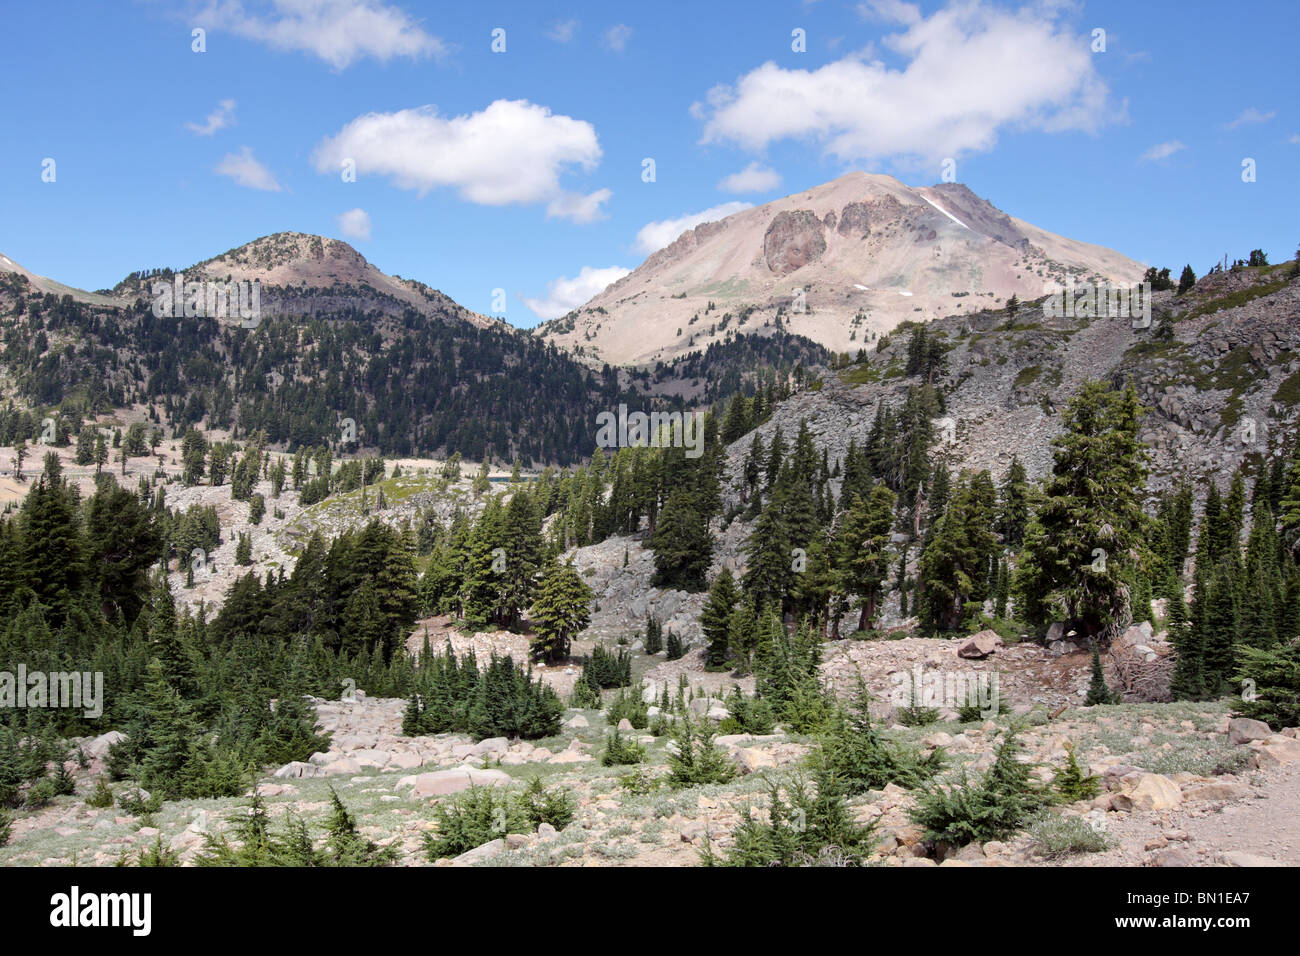 Rising 10,462 feet above sea level Mount Lassen is the southern most volcano in the Cascade Volcanic Arc. - Stock Image